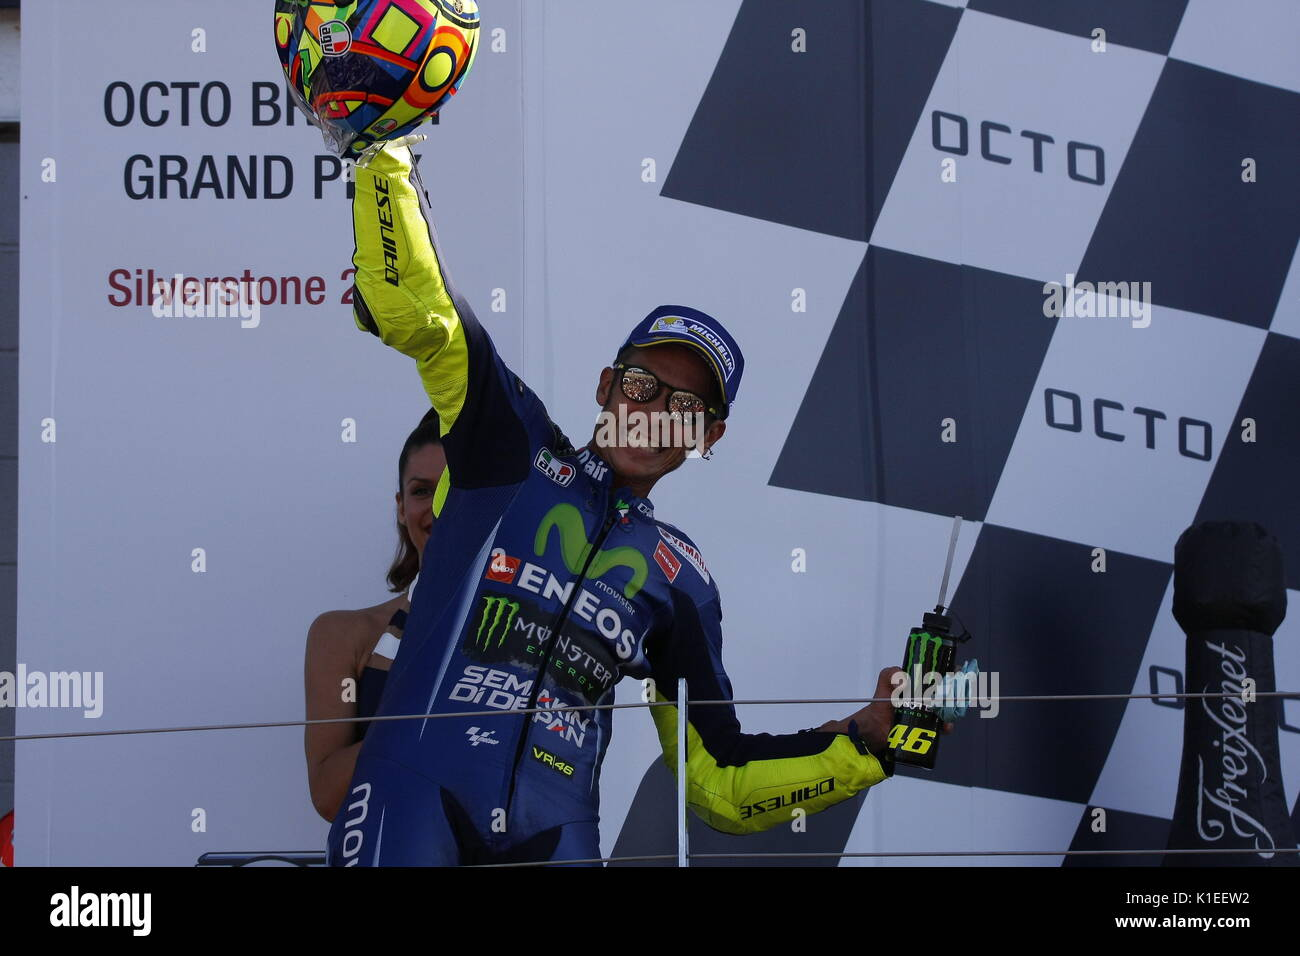 Silverstone, UK. 27th Aug, 2017.  Valentino Rossi makes coming third look like a win at the OCTO British MotoGP Credit: Motofoto/Alamy Live News - Stock Image